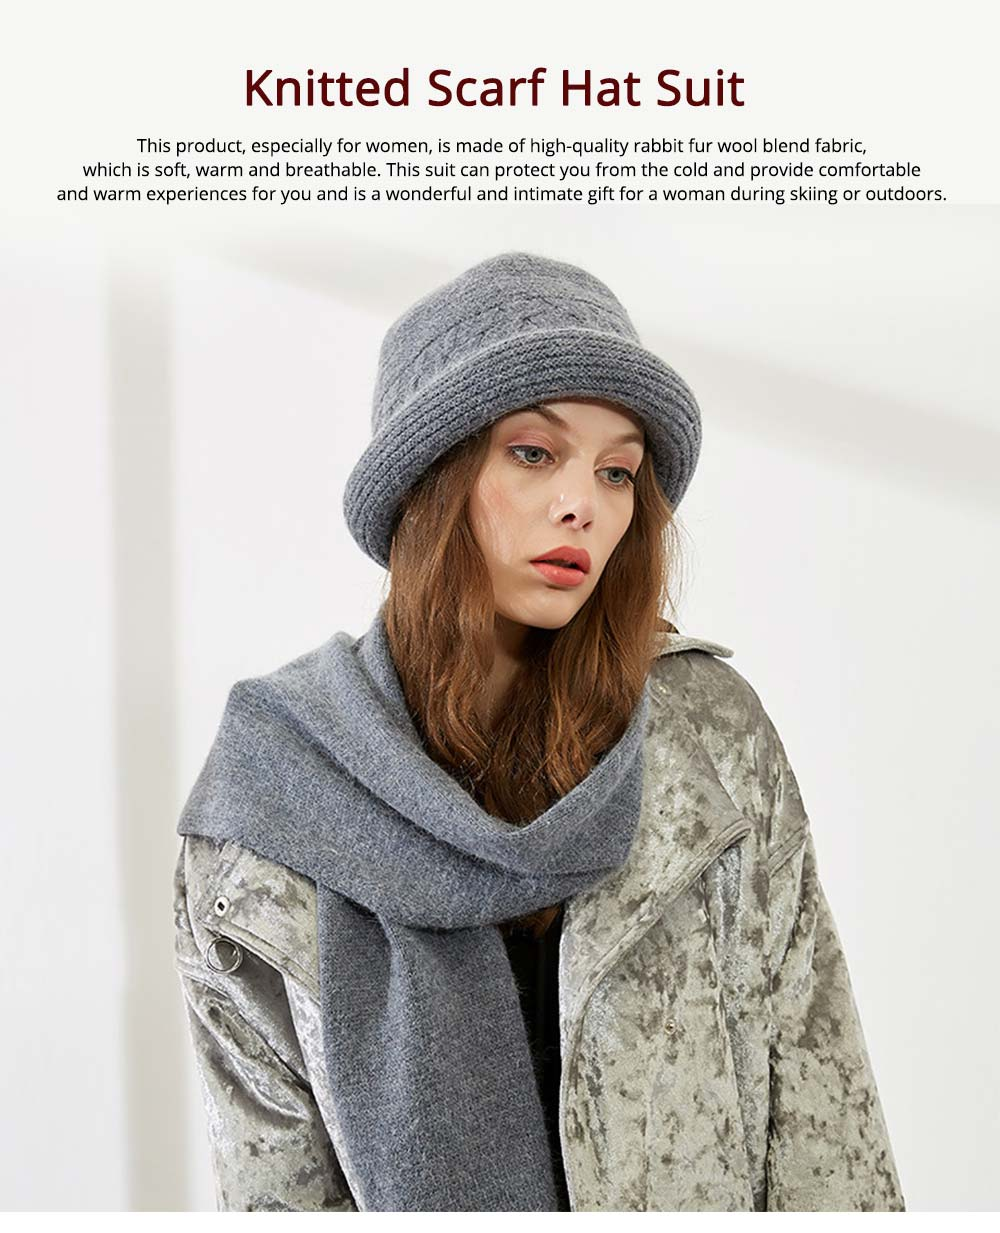 Fashion Simple Women Crimping Edge Hat Scarf Suit, Warm Smooth Rabbit Fur Wool Blend Knitted Hat and Circle Scarf 7